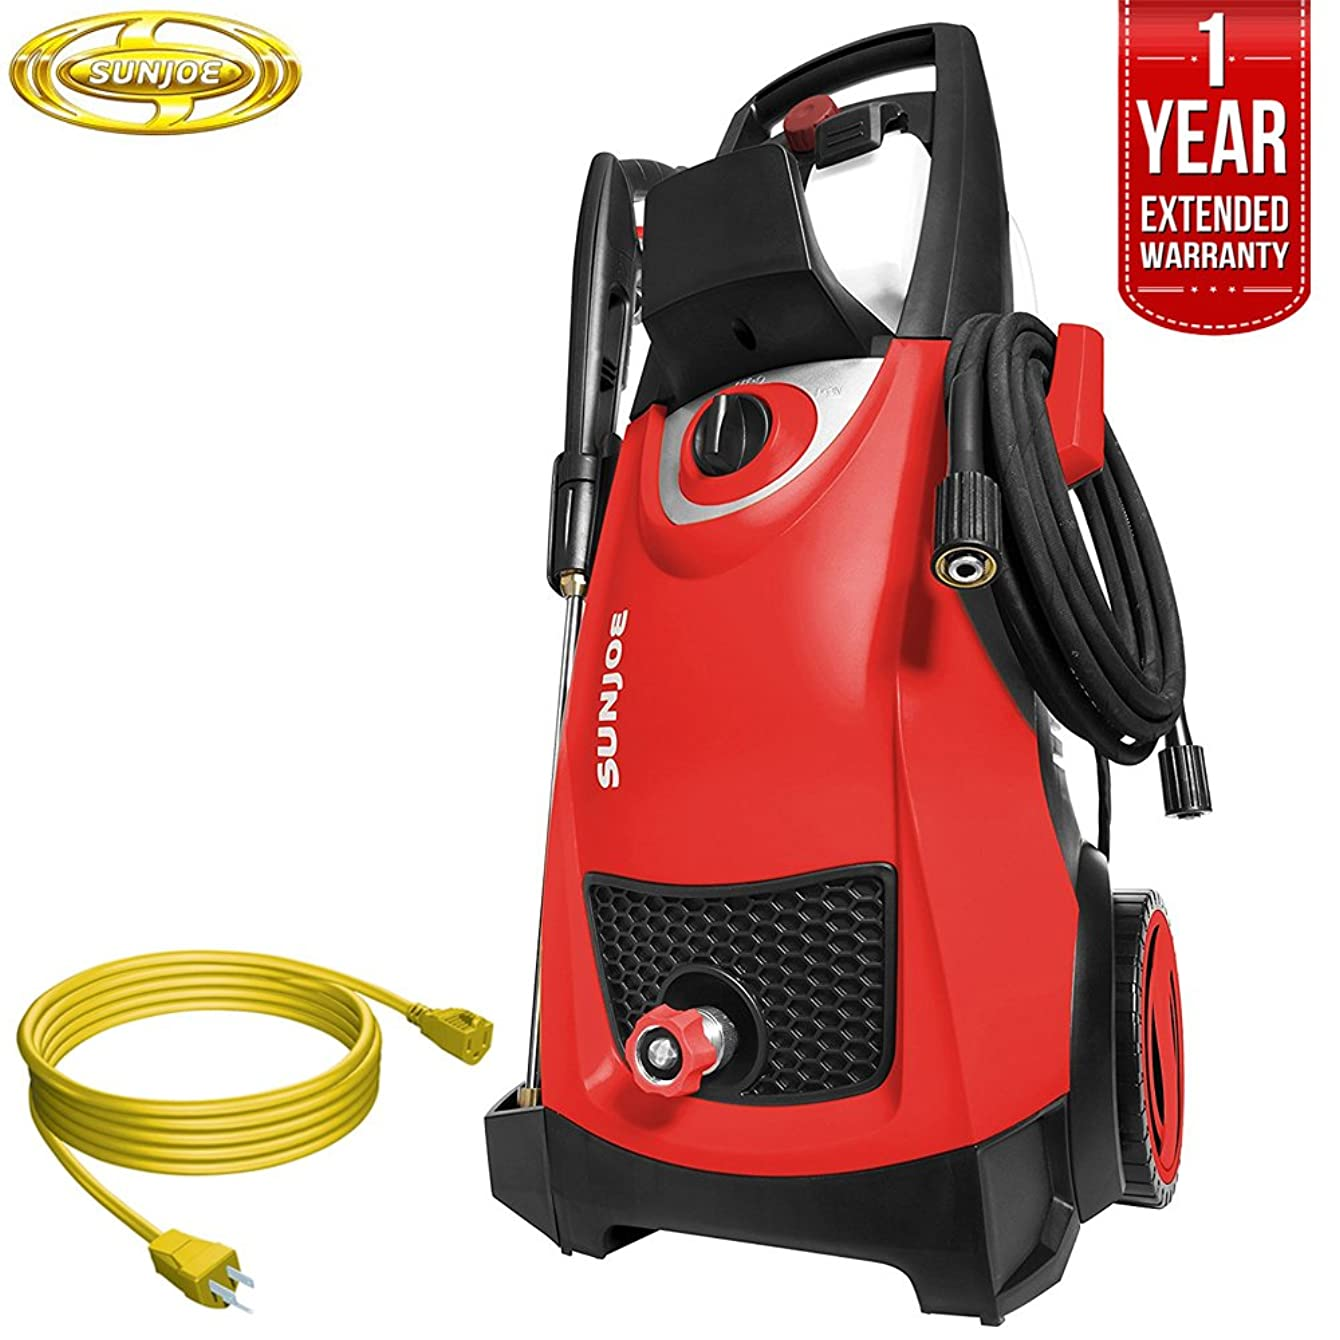 Sun Joe SPX3000 Pressure Joe 2030 PSI Electric Pressure Washer All You Need Bundle with 25 Foot Outdoor Extension Cord and One Year Warranty Extension (Red)